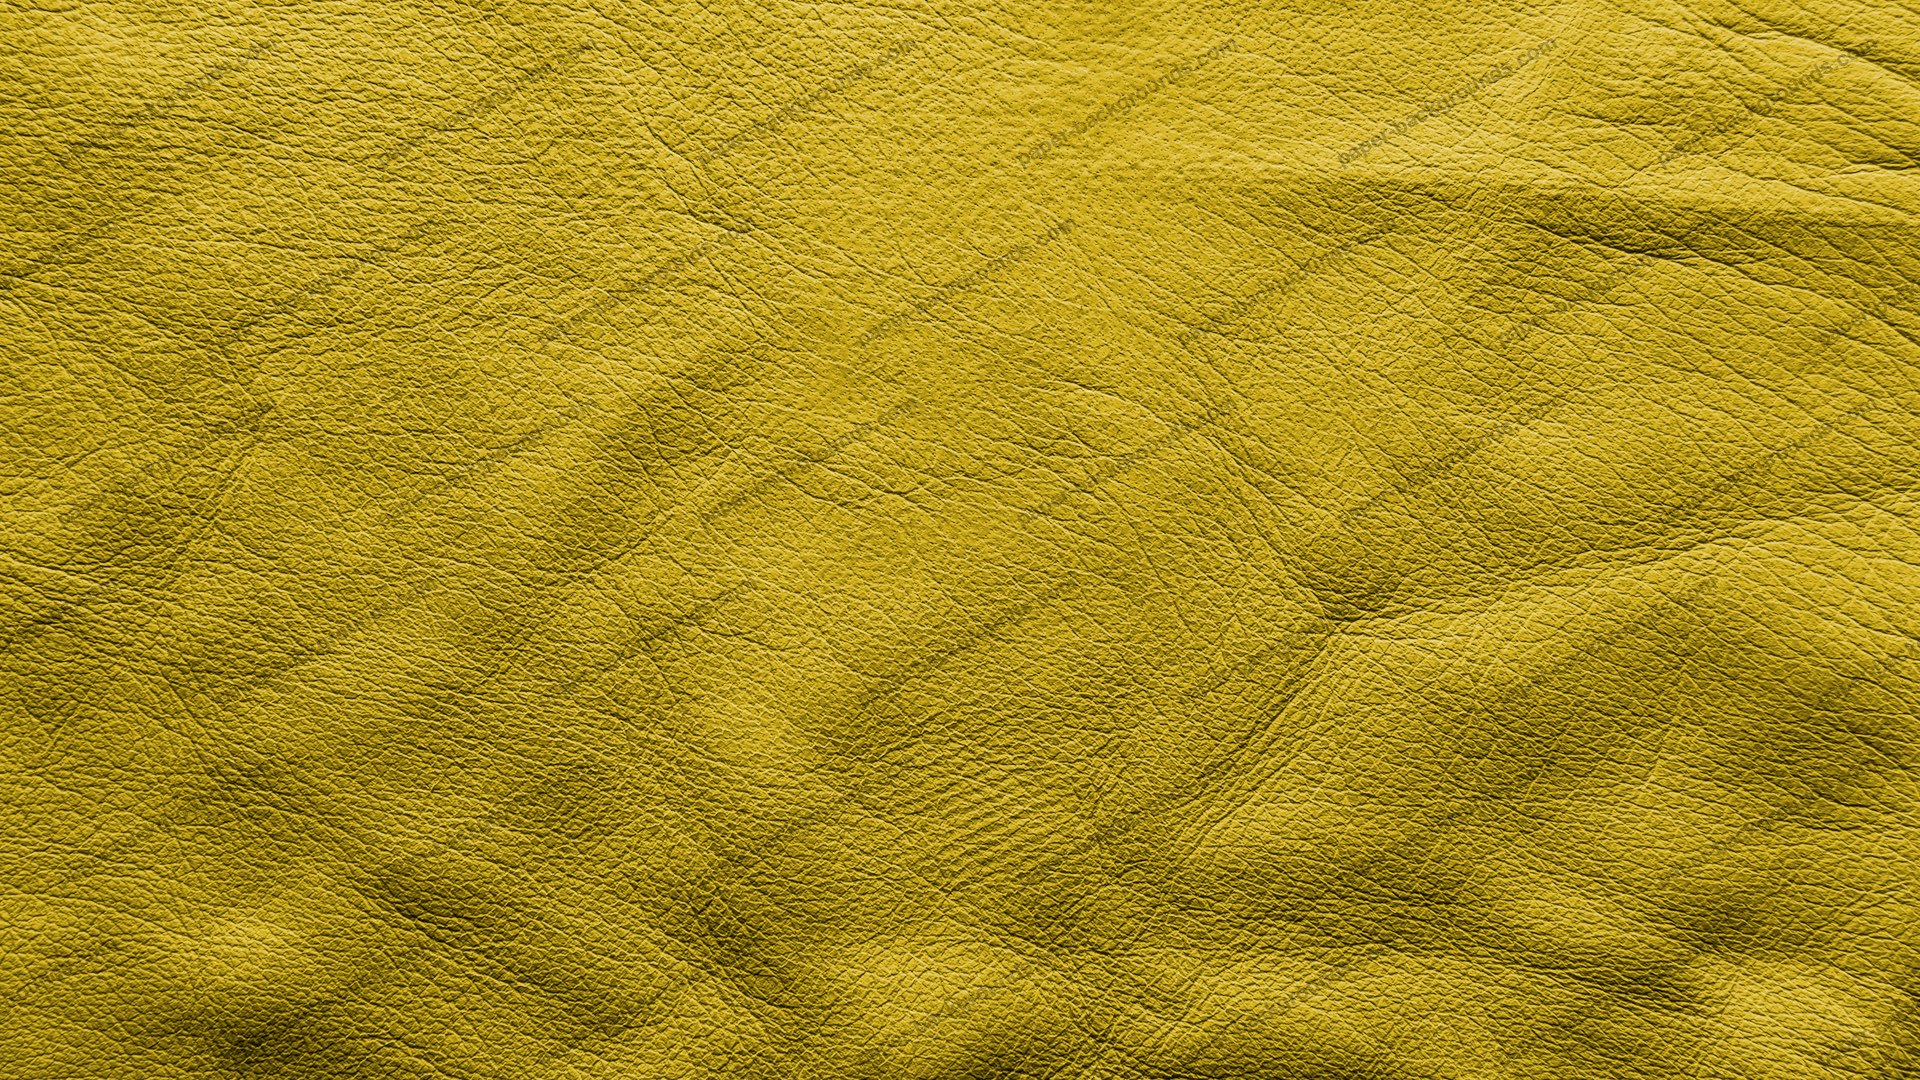 Paper backgrounds leather textures royalty free hd paper backgrounds yellow soft leather background hd 1920 x 1080p thecheapjerseys